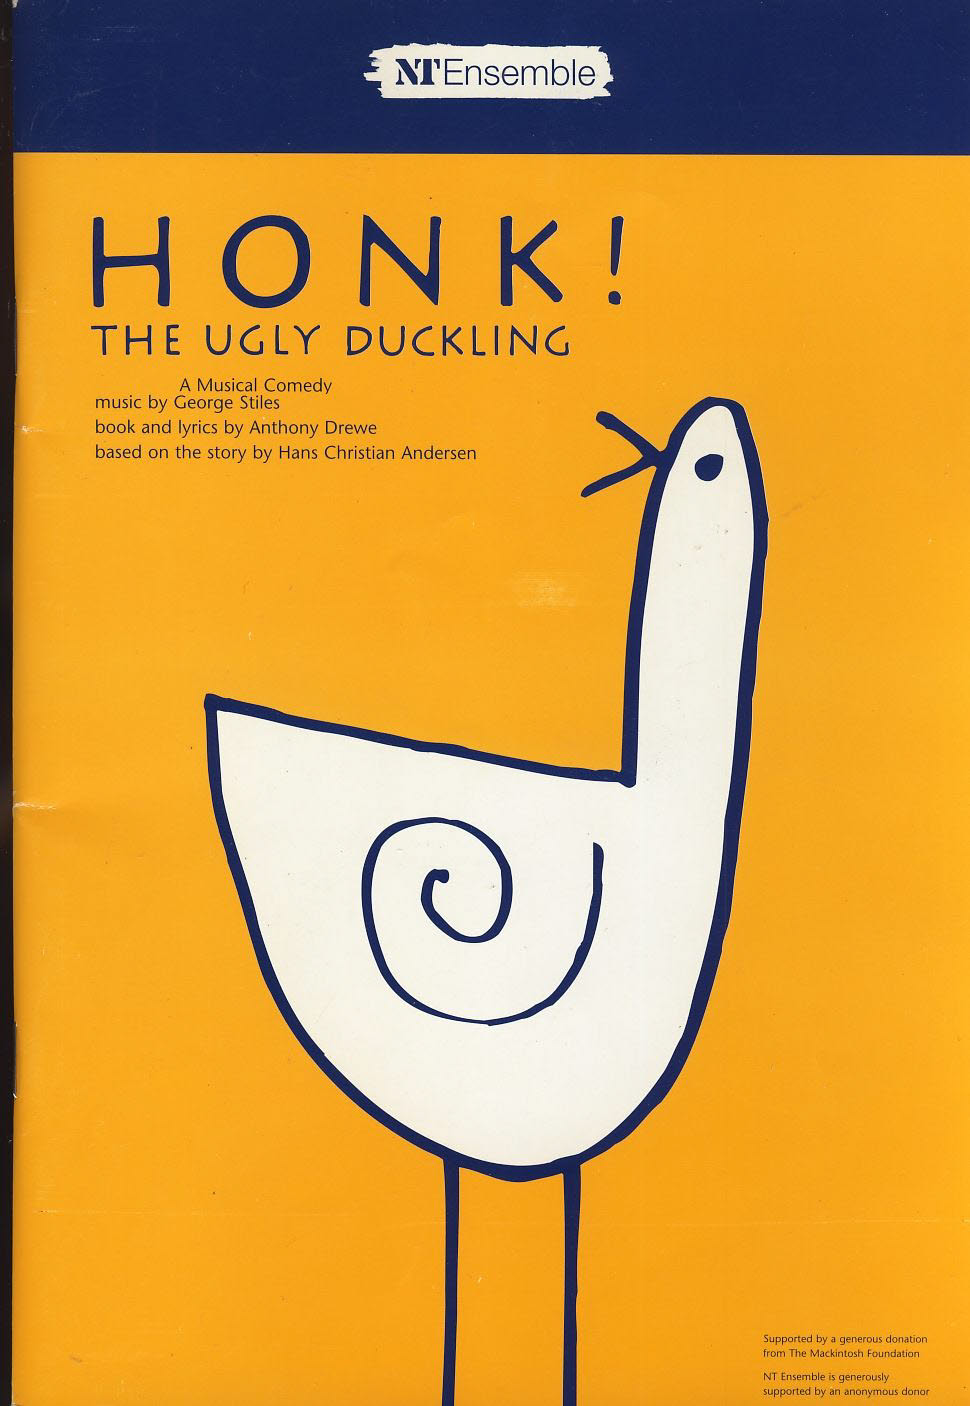 HONK! The Ugly Duckling Musical Comedy NT Theatre Programme refb1263 Measures approx 17cm x 24cm.